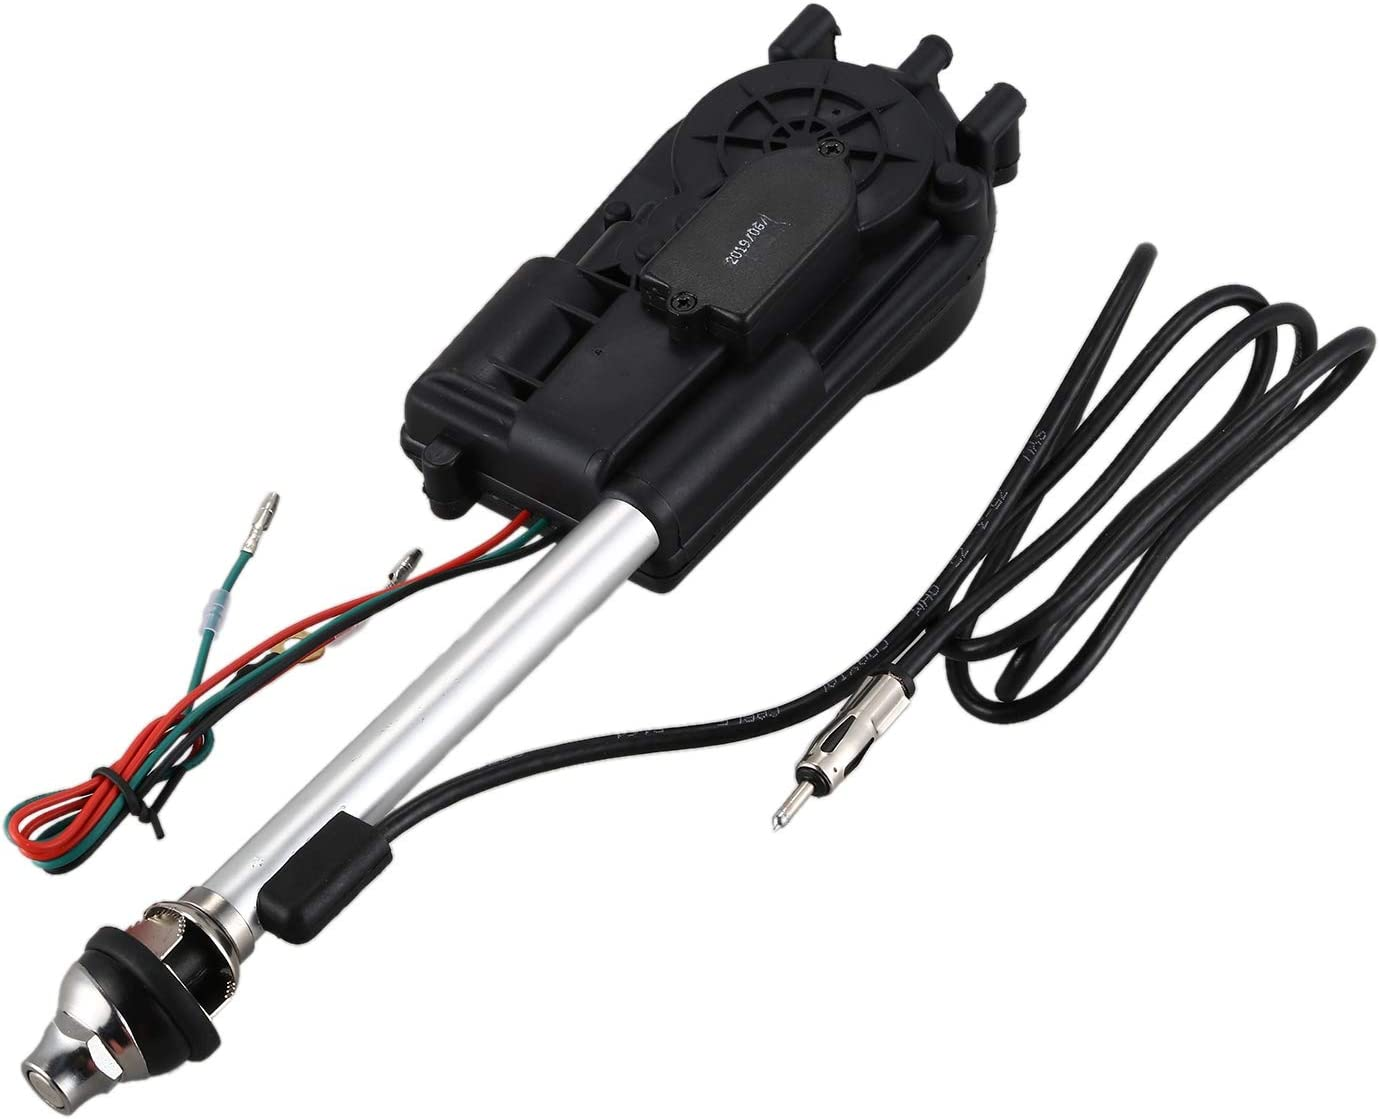 JVSISM Car Electric Aerial Radio Automatic Booster Power Antenna Kit Black